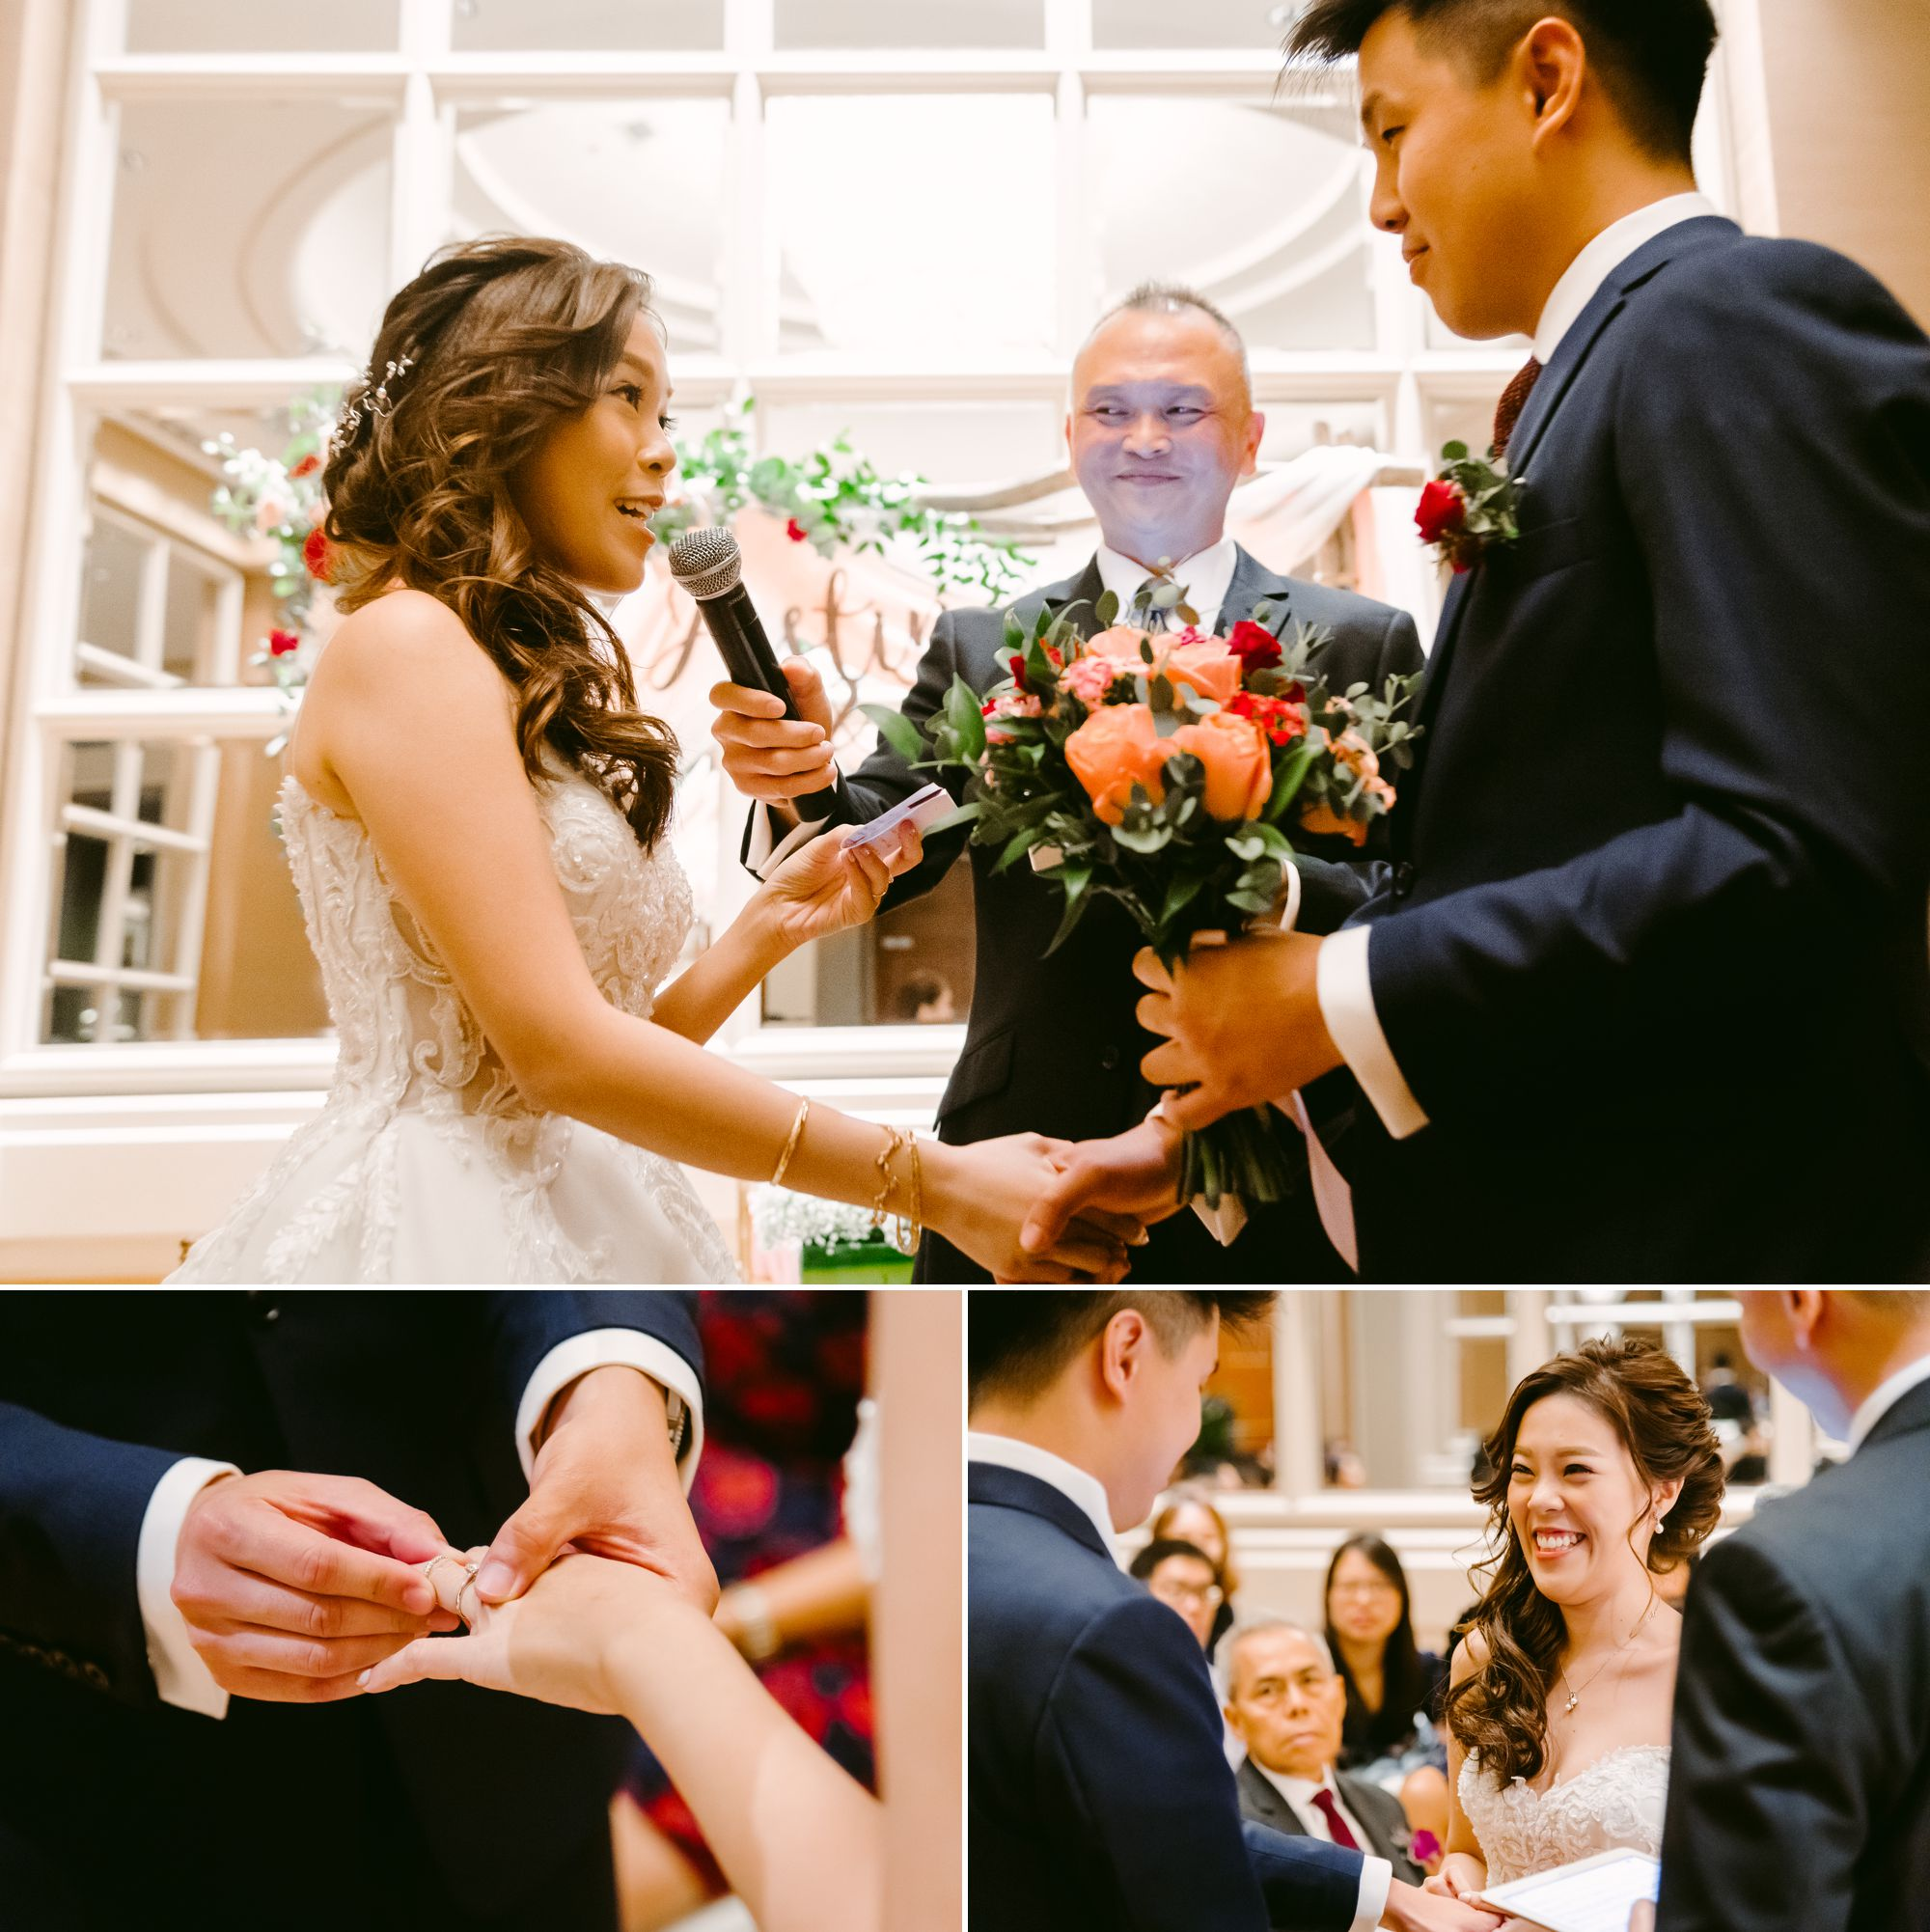 conrad_wedding_Singapore_ 30.jpg